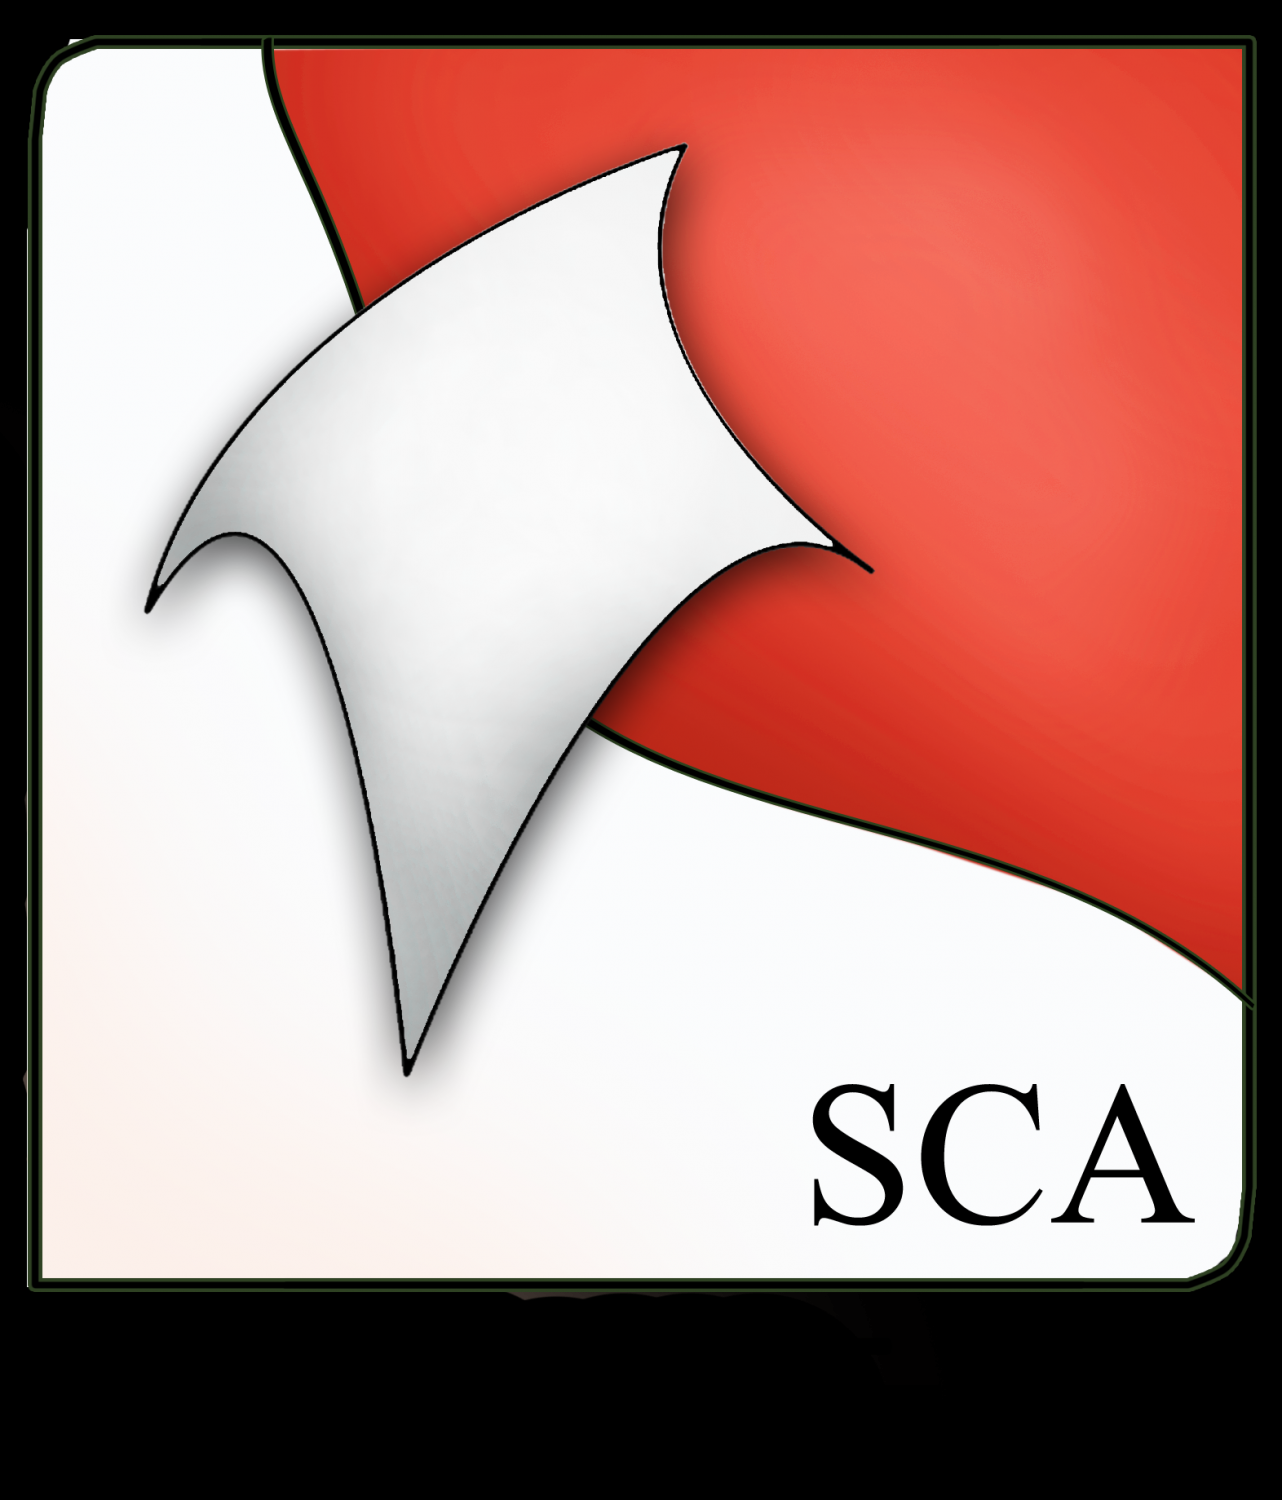 SCA-SYSTEM